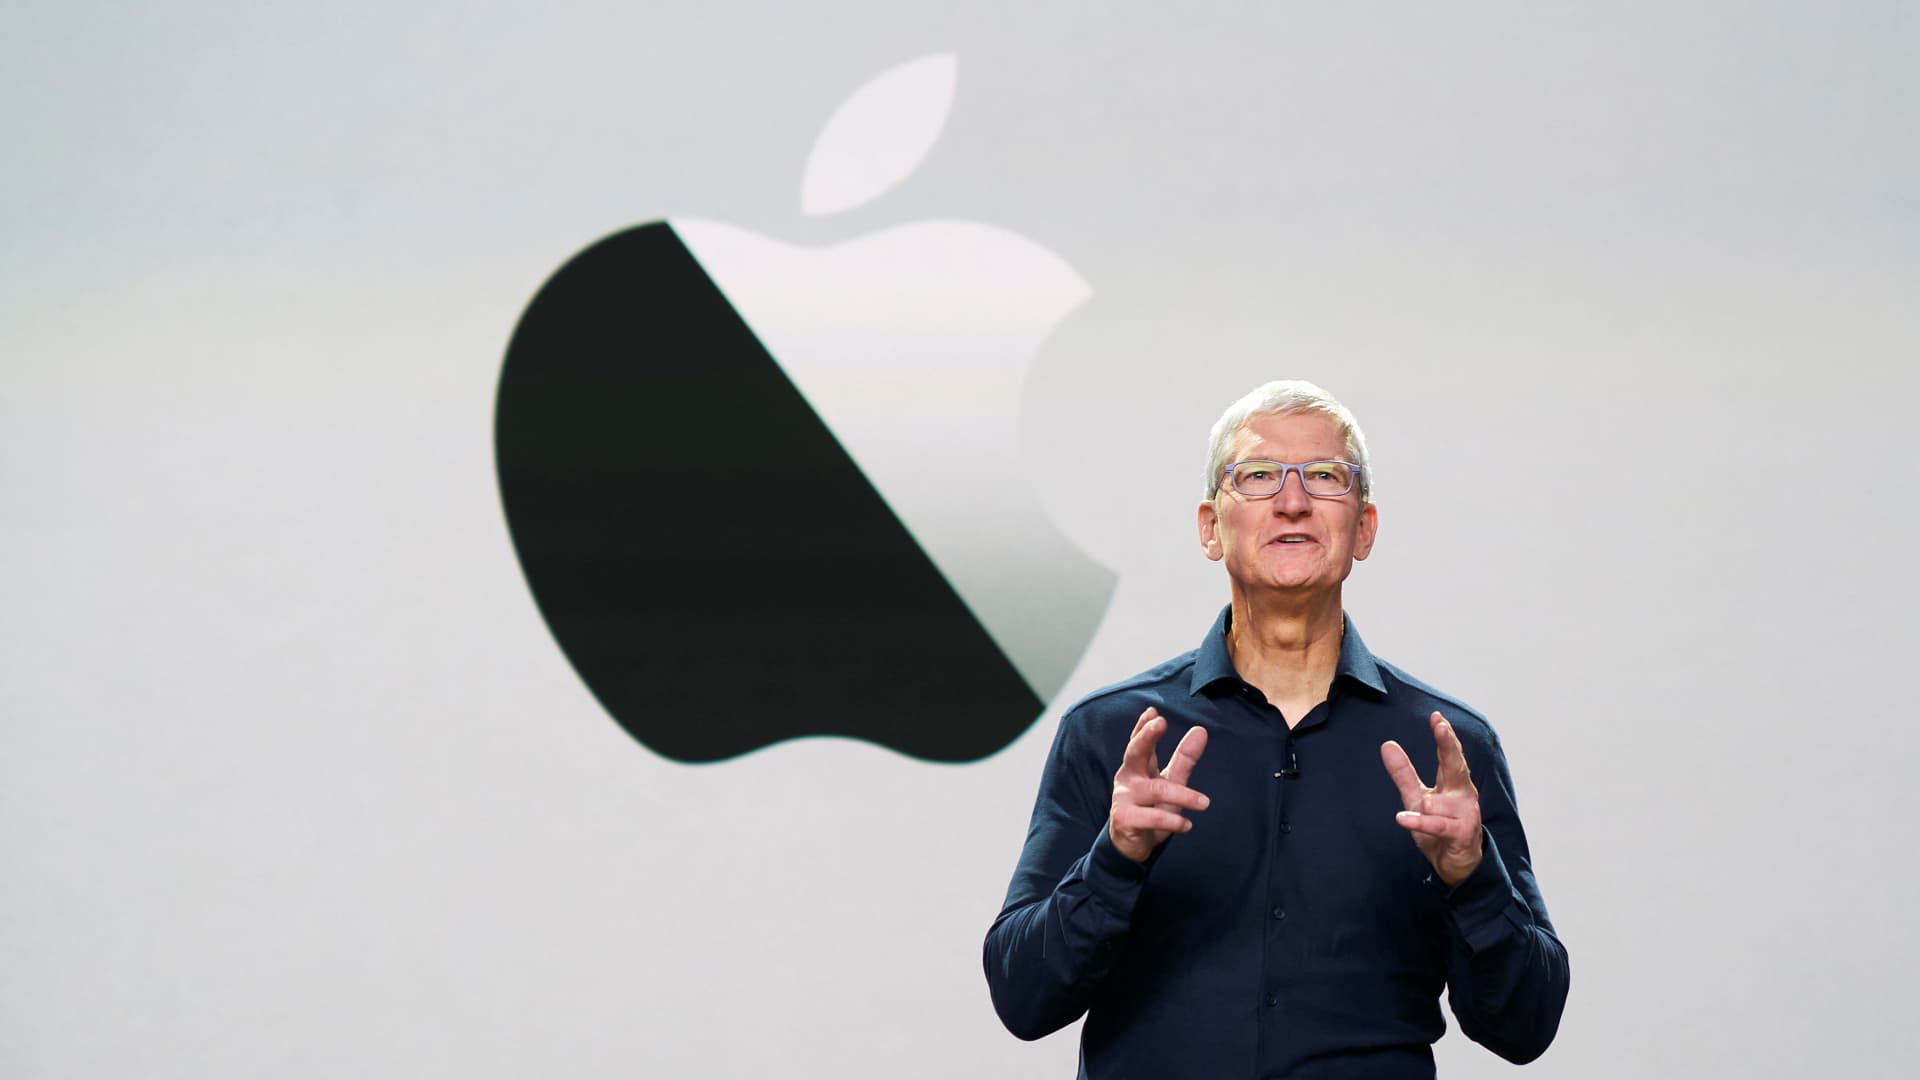 Apple CEO Tim Cook delivers the keynote address during the 2020 Apple Worldwide Developers Conference (WWDC) at Steve Jobs Theater in Cupertino, California.